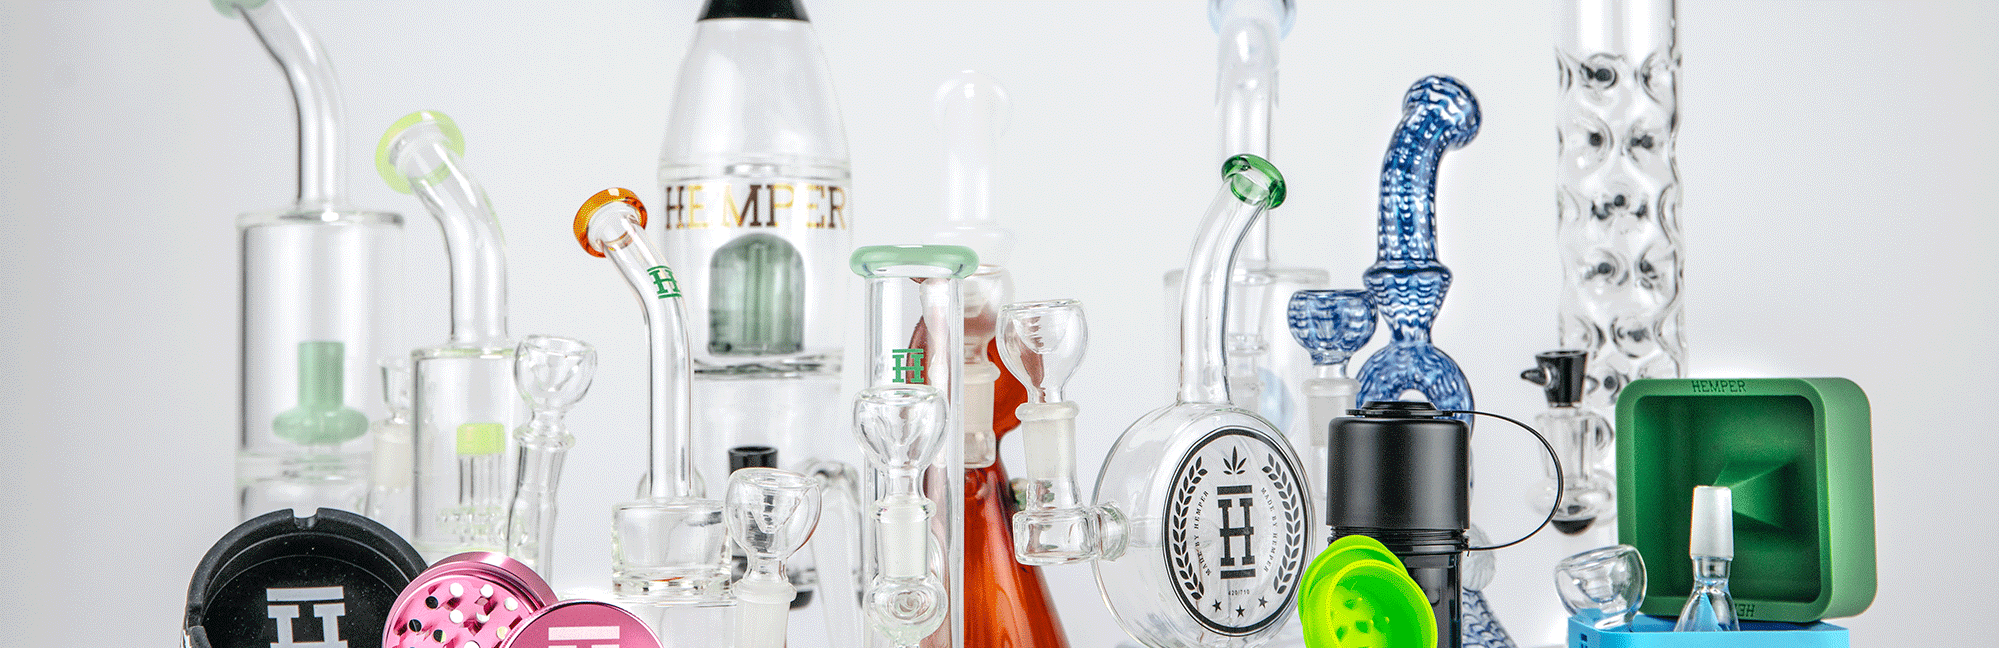 Best Bongs for Beginners - HEMPER